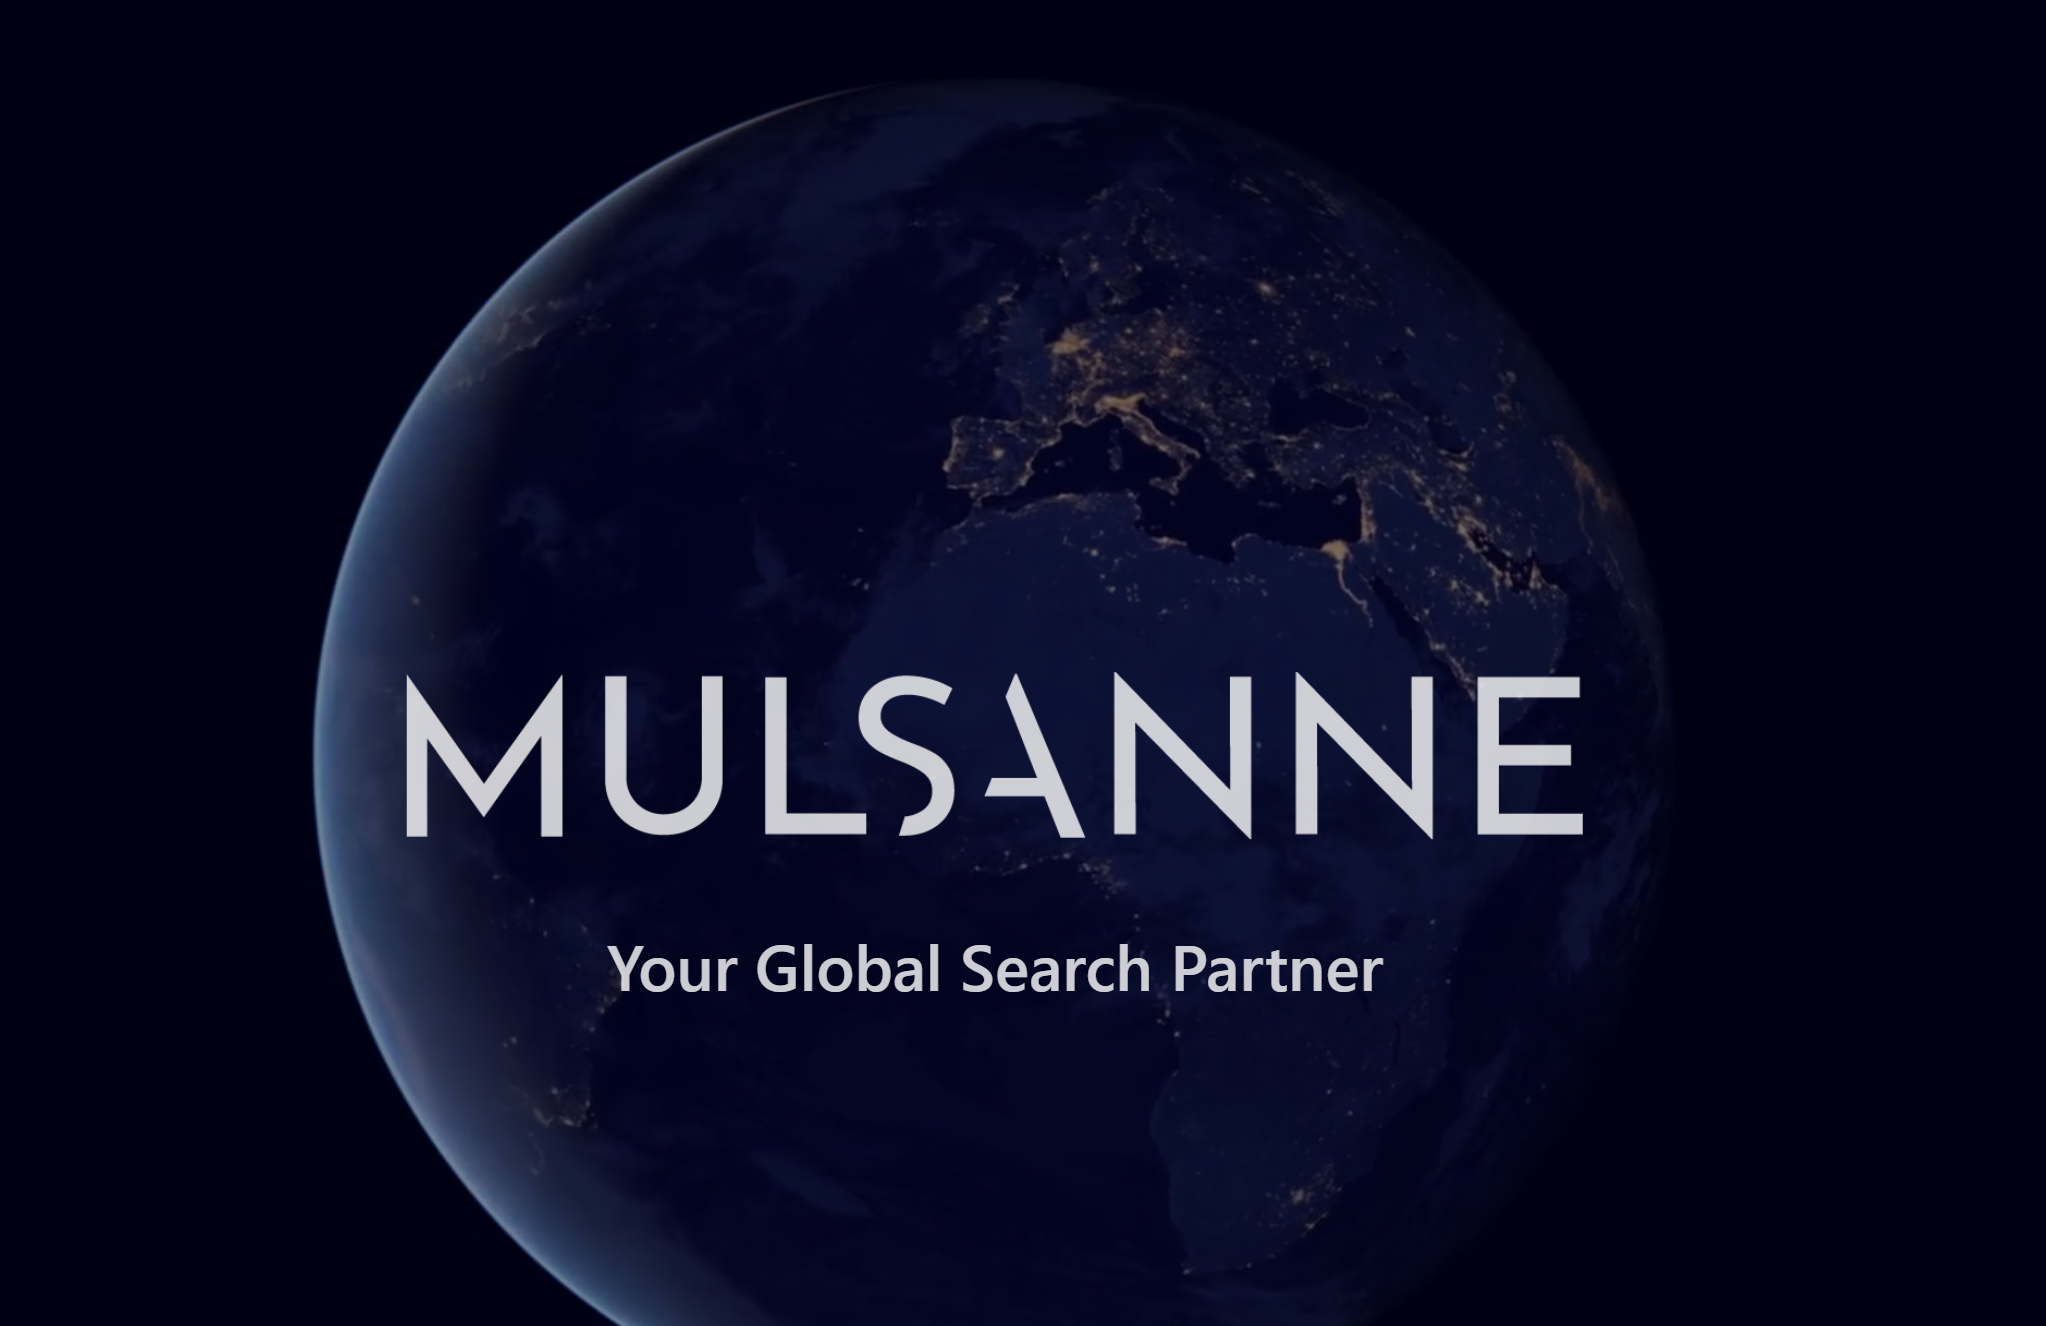 The Mulsanne Partnership announces Head of Corporate Functions Practice